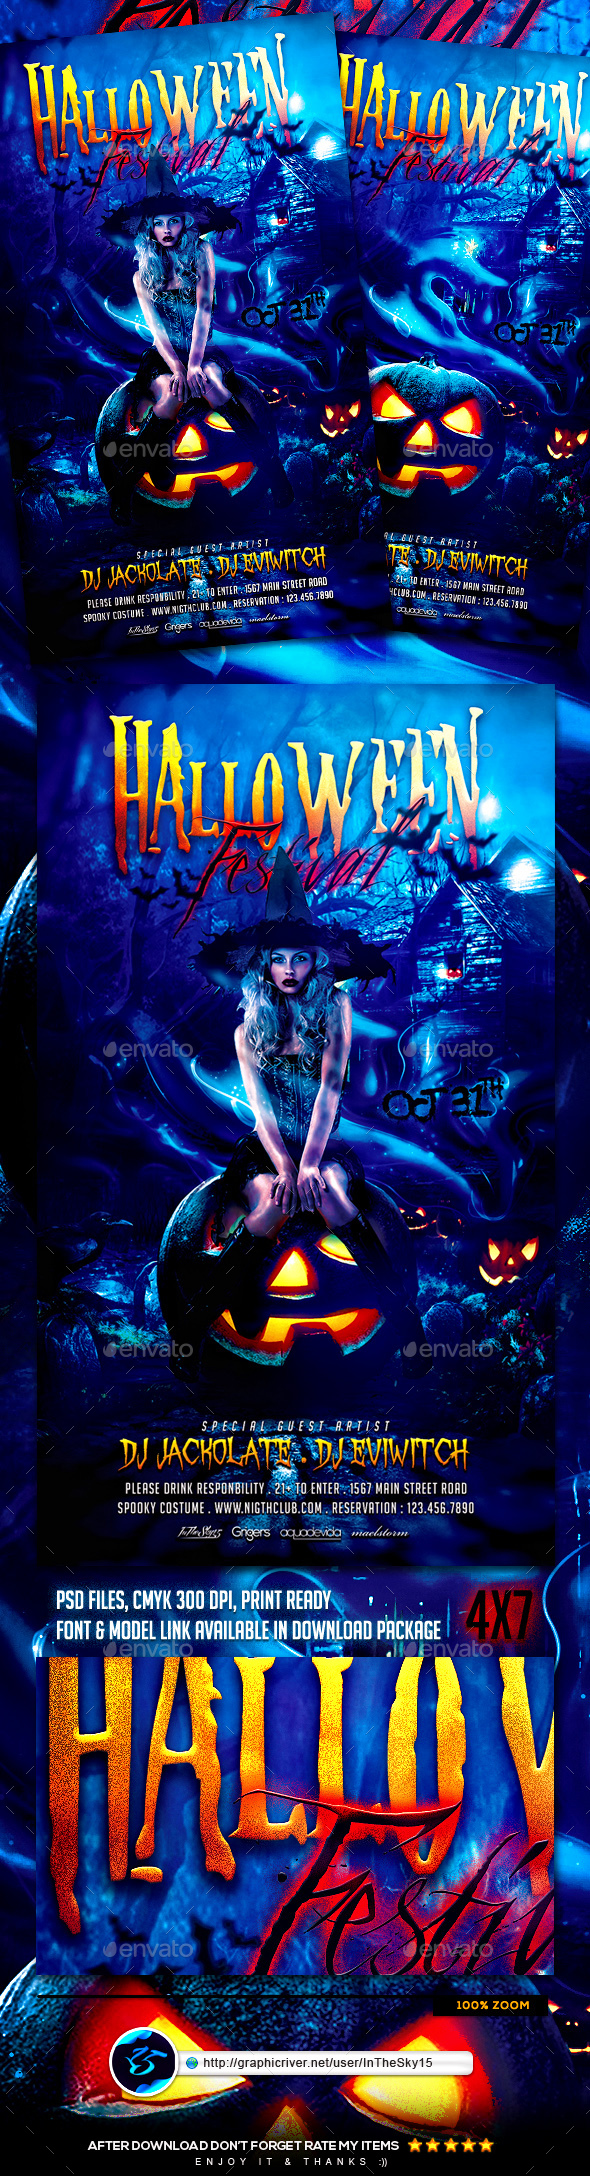 Halloween Festival Flyer Template